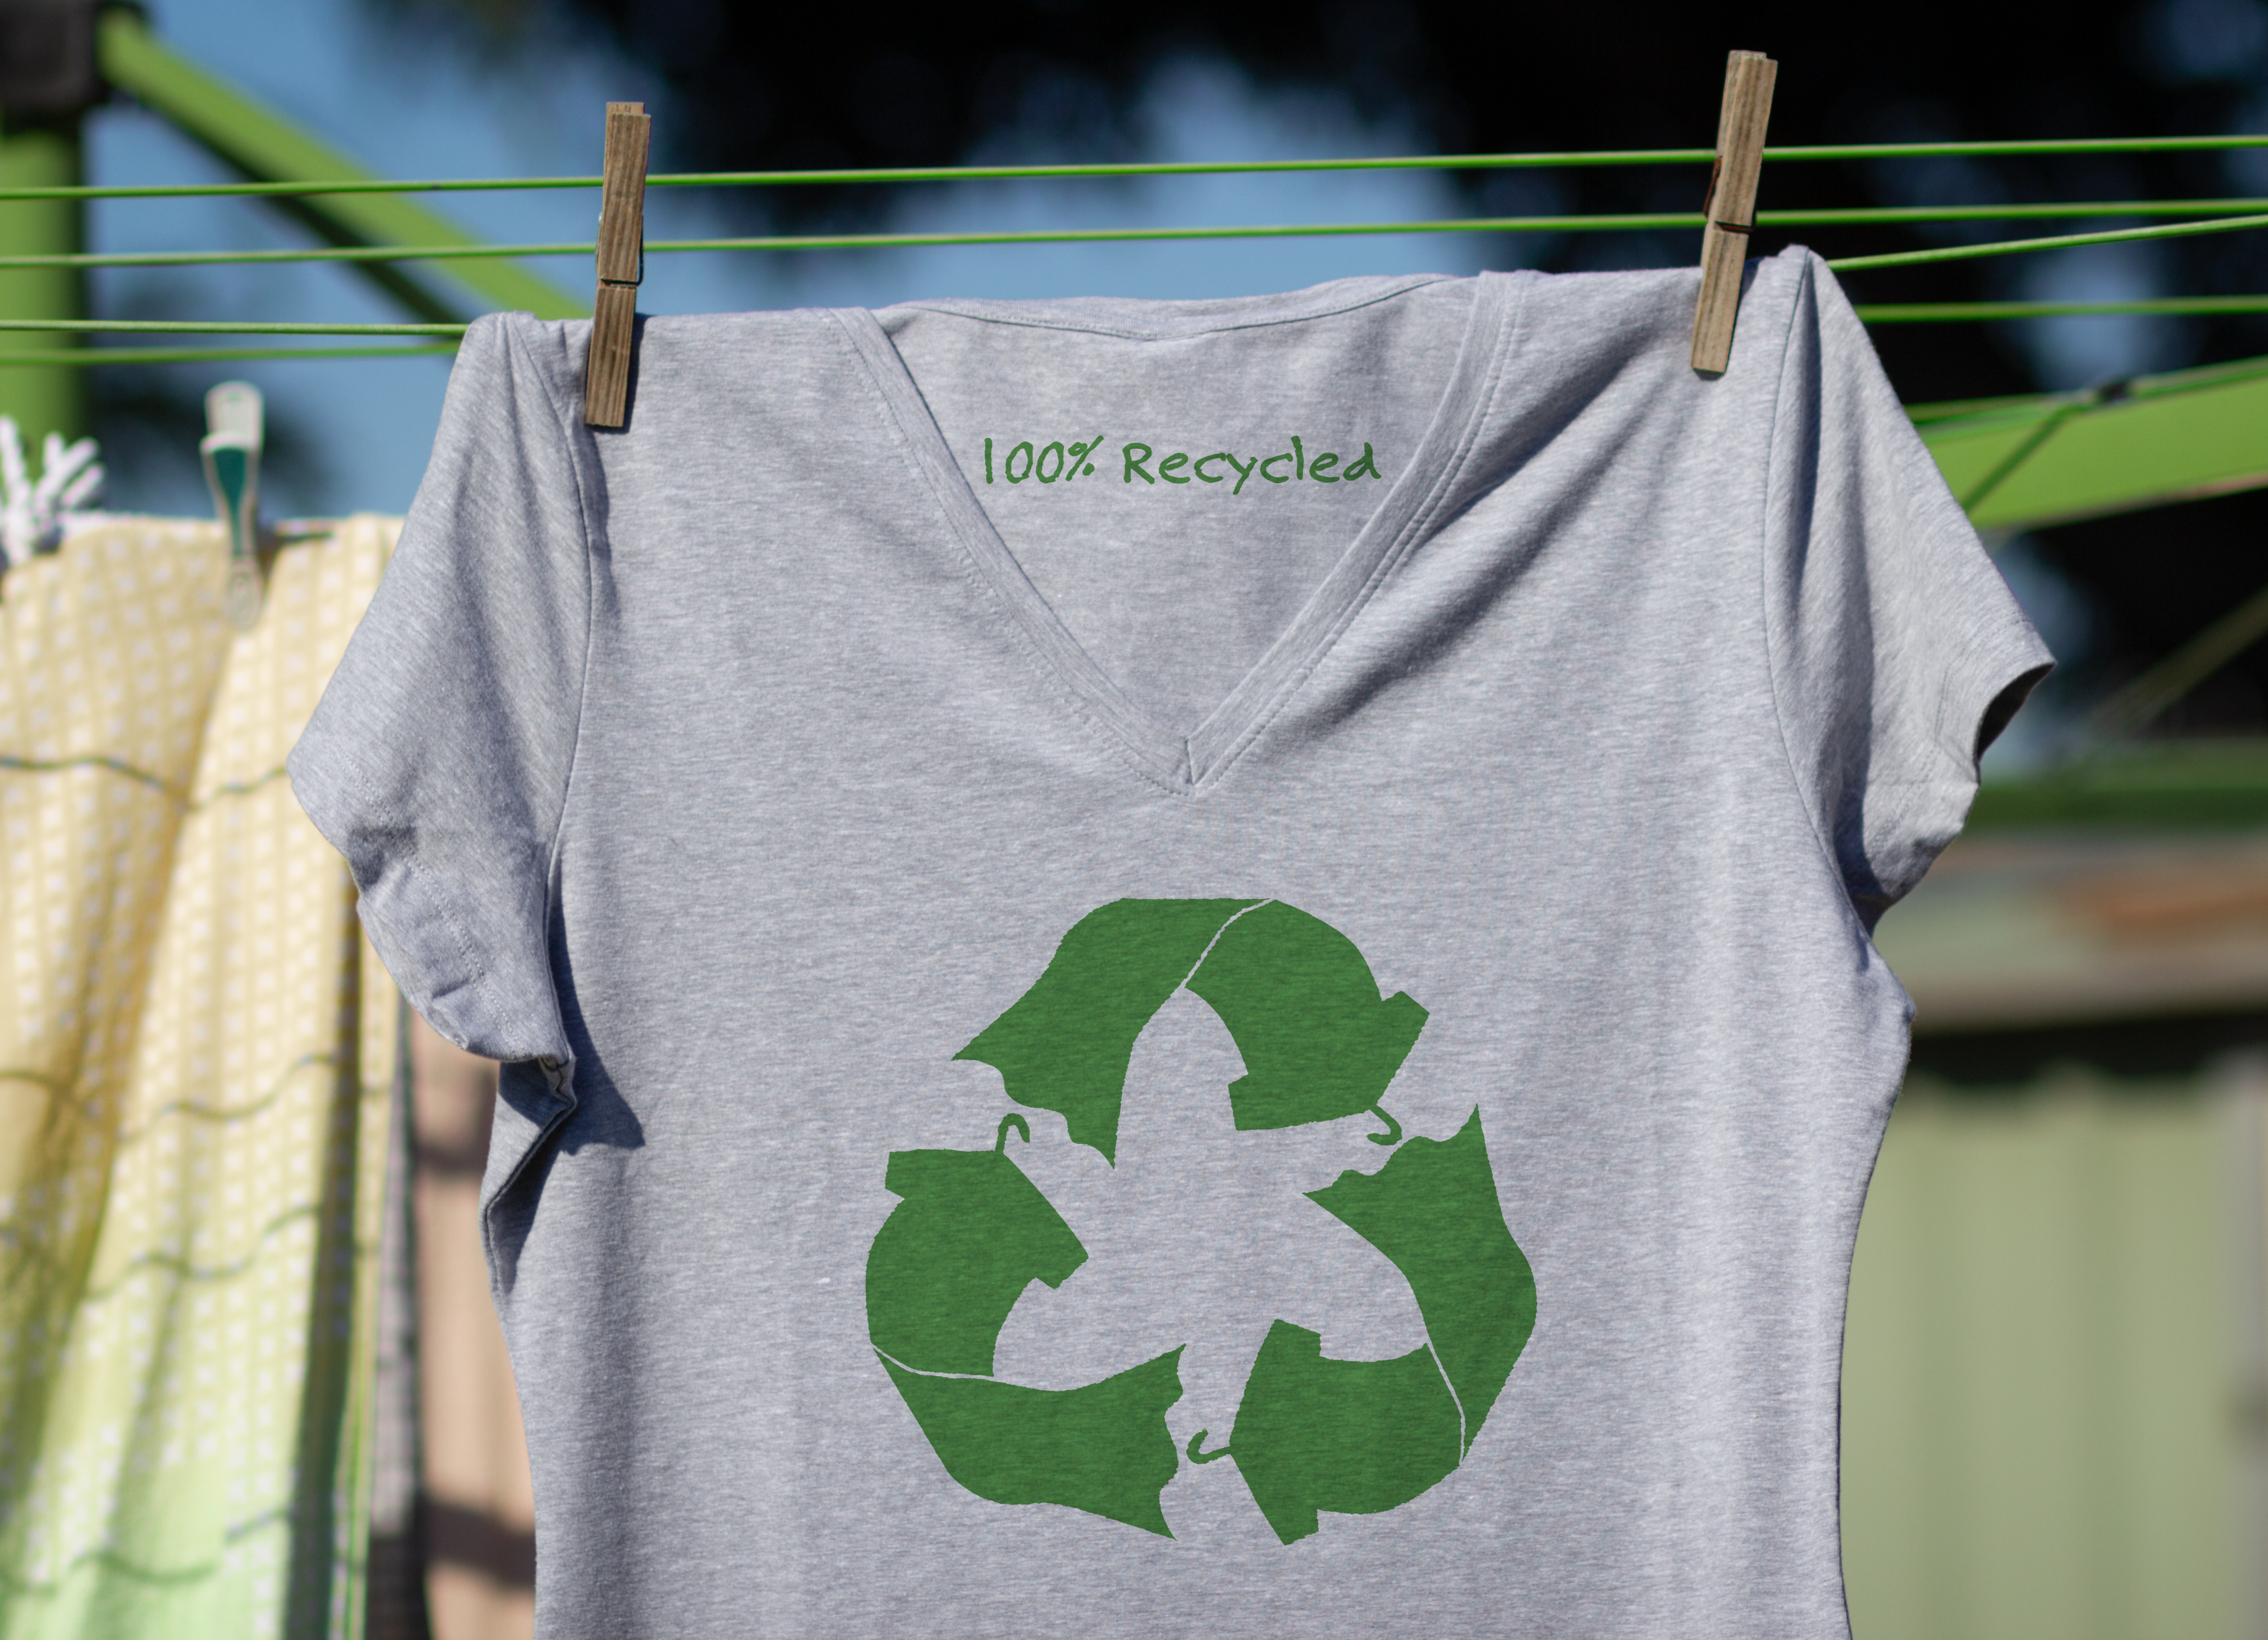 Recycle clothes icon on t shirt